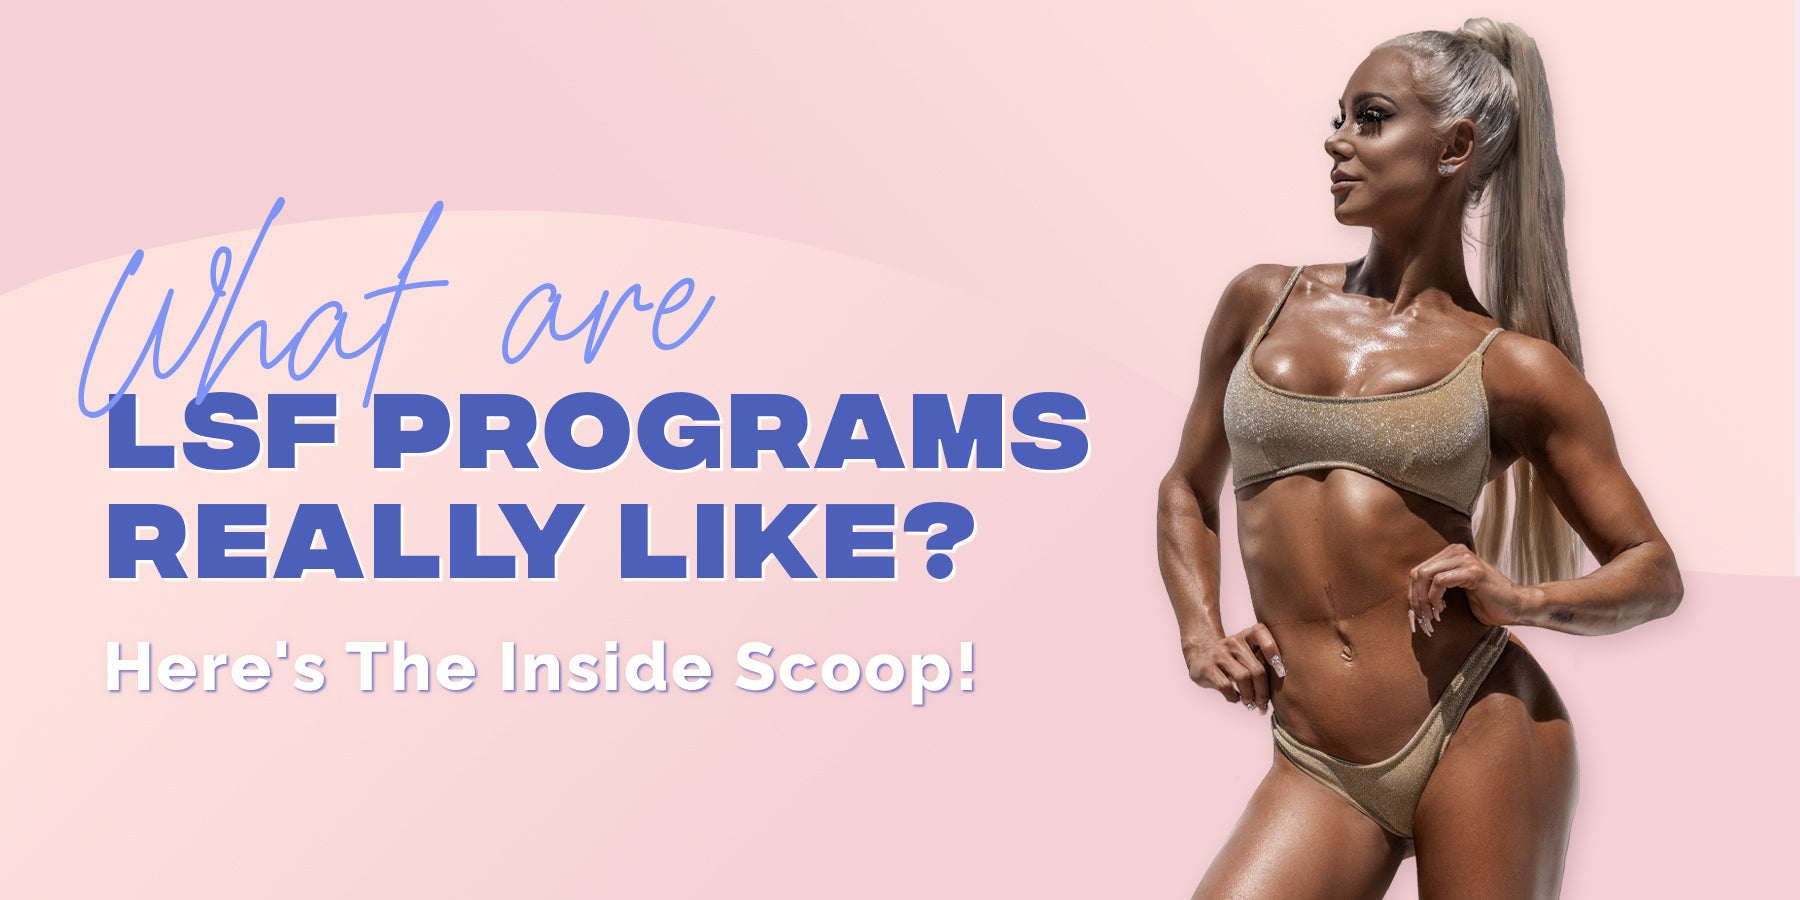 What Are LSF Programs Really Like? Here's the Inside Scoop!